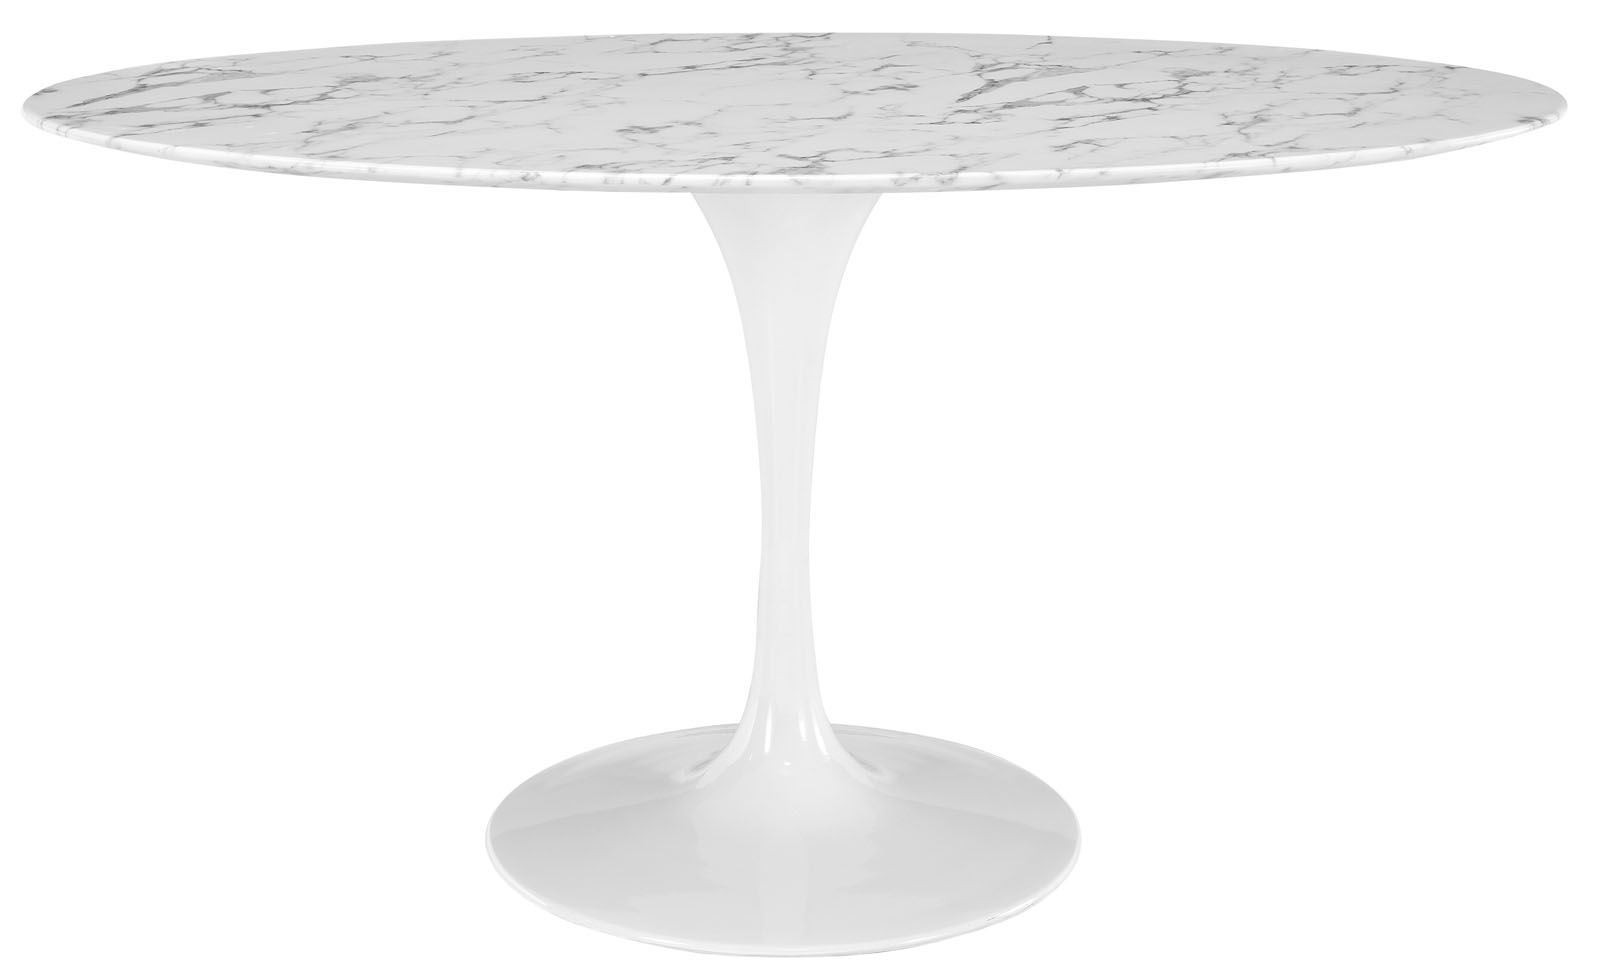 lippa white 60 oval shaped artificial marble dining table from renegade eei 1135 coleman. Black Bedroom Furniture Sets. Home Design Ideas